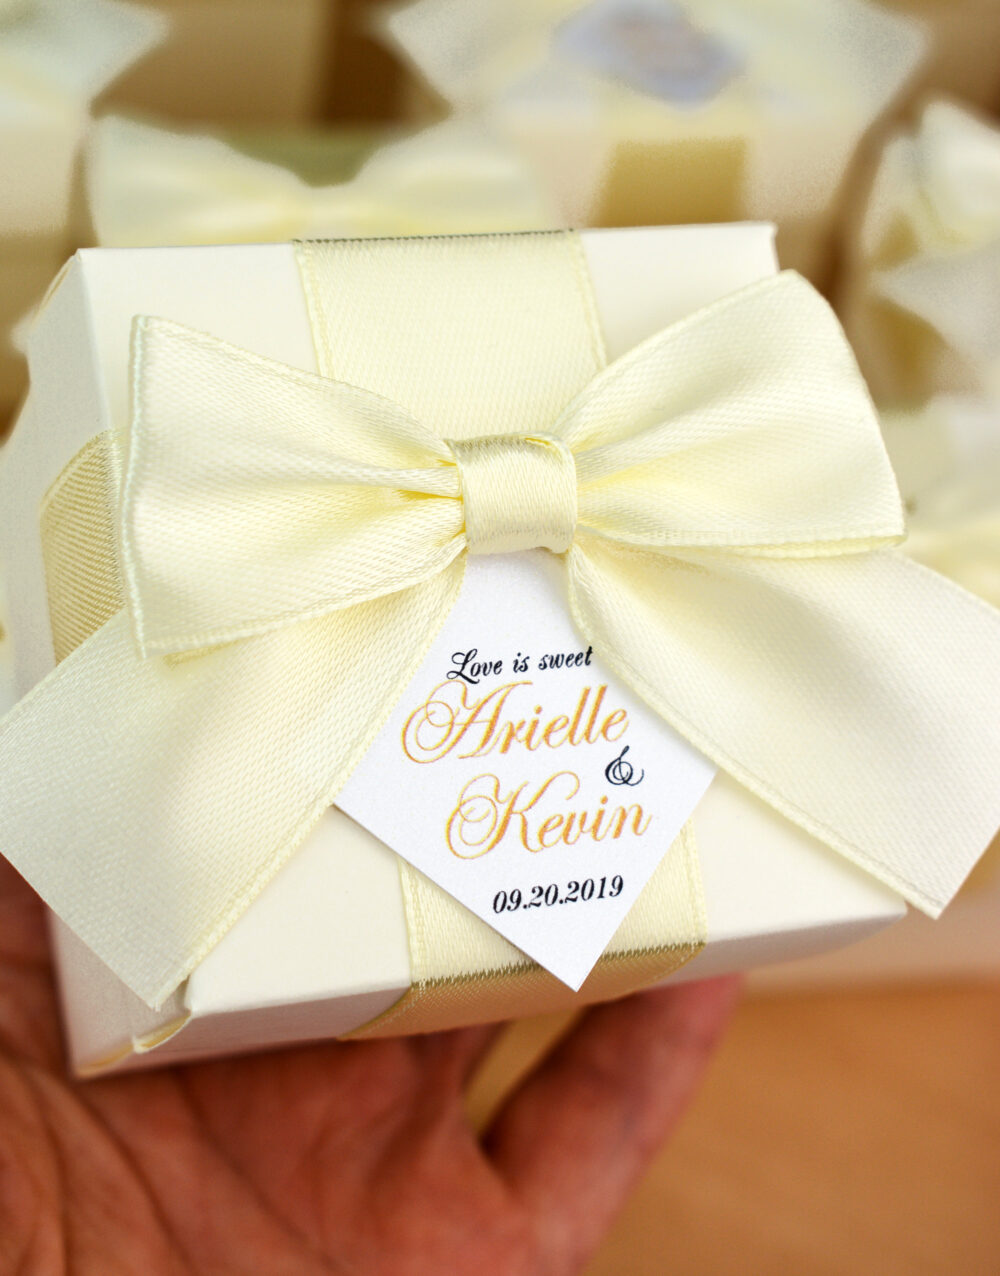 Ivory Wedding Favor Boxes With Satin Ribbon Bow & Custom Tag, Elegant Personalized Wedding Candy Box, Bonbonniere For Guests